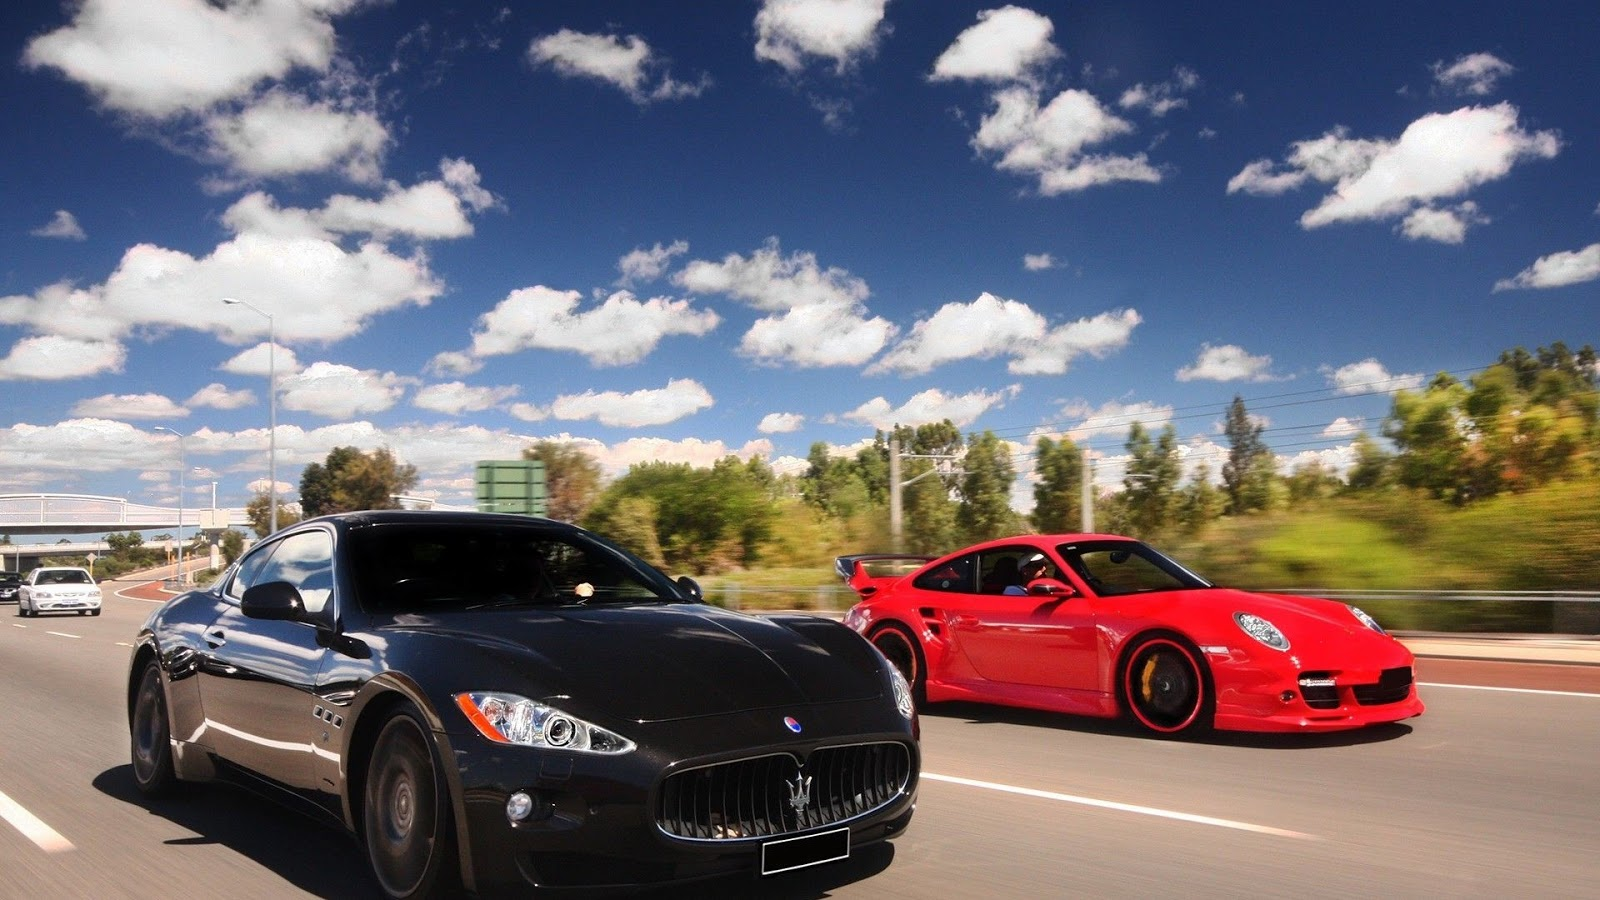 Royal Cars And Bikes Wallpapers Maserati Vs Corvette